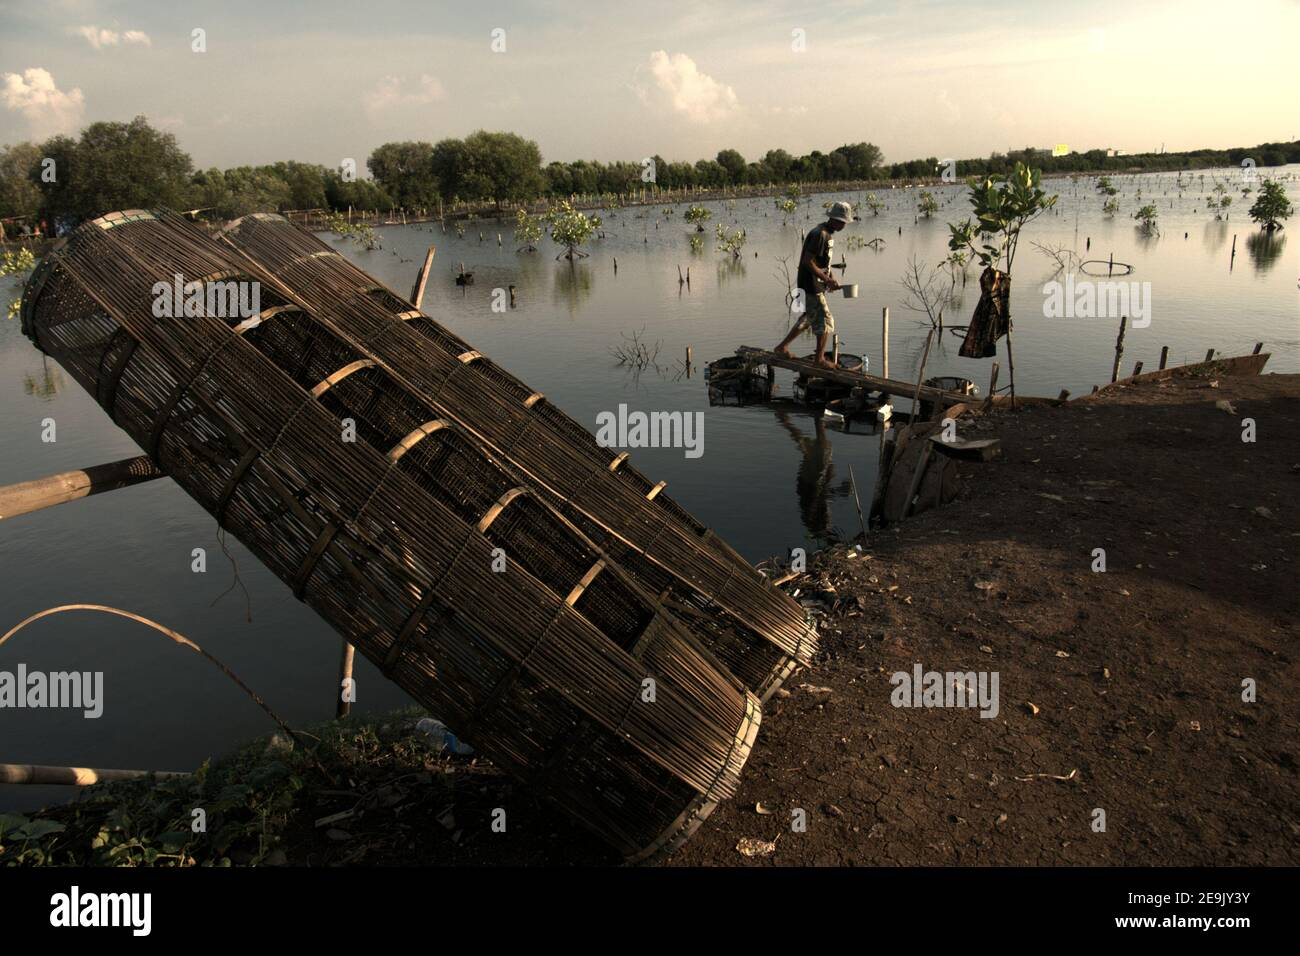 A man taking care his aquaculture installation placed on a mangrove restoration area in the coastal area of Jakarta, Indonesia. Stock Photo